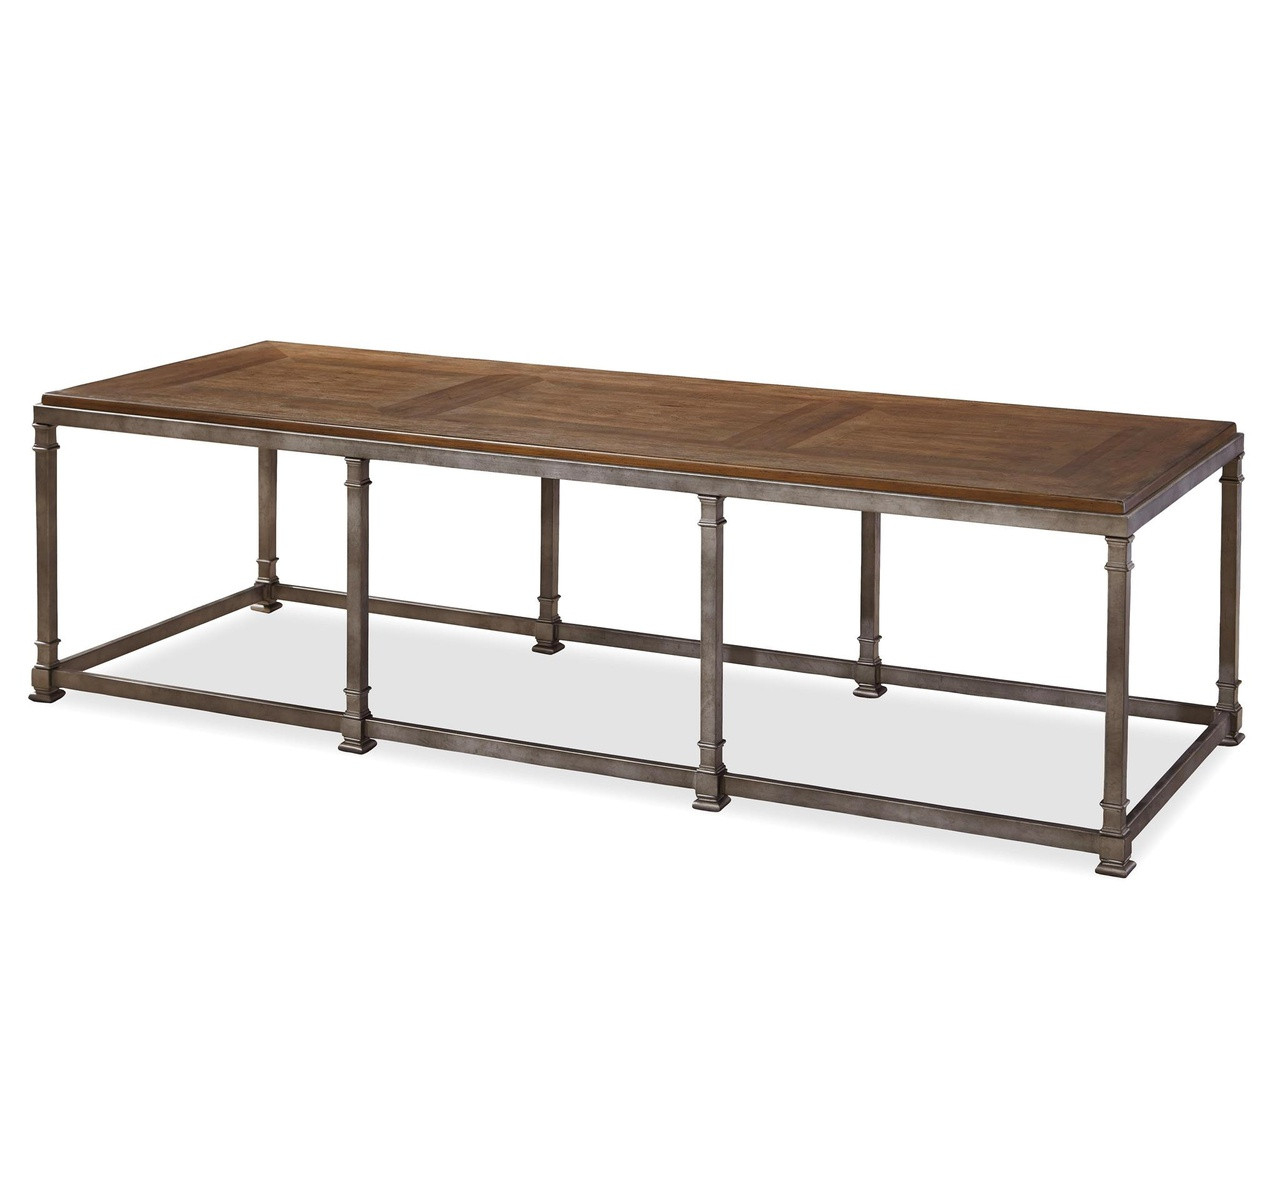 Large Coffee Table Industrial Style: Maison Industrial Metal Leg + Wood Top Large Coffee Table